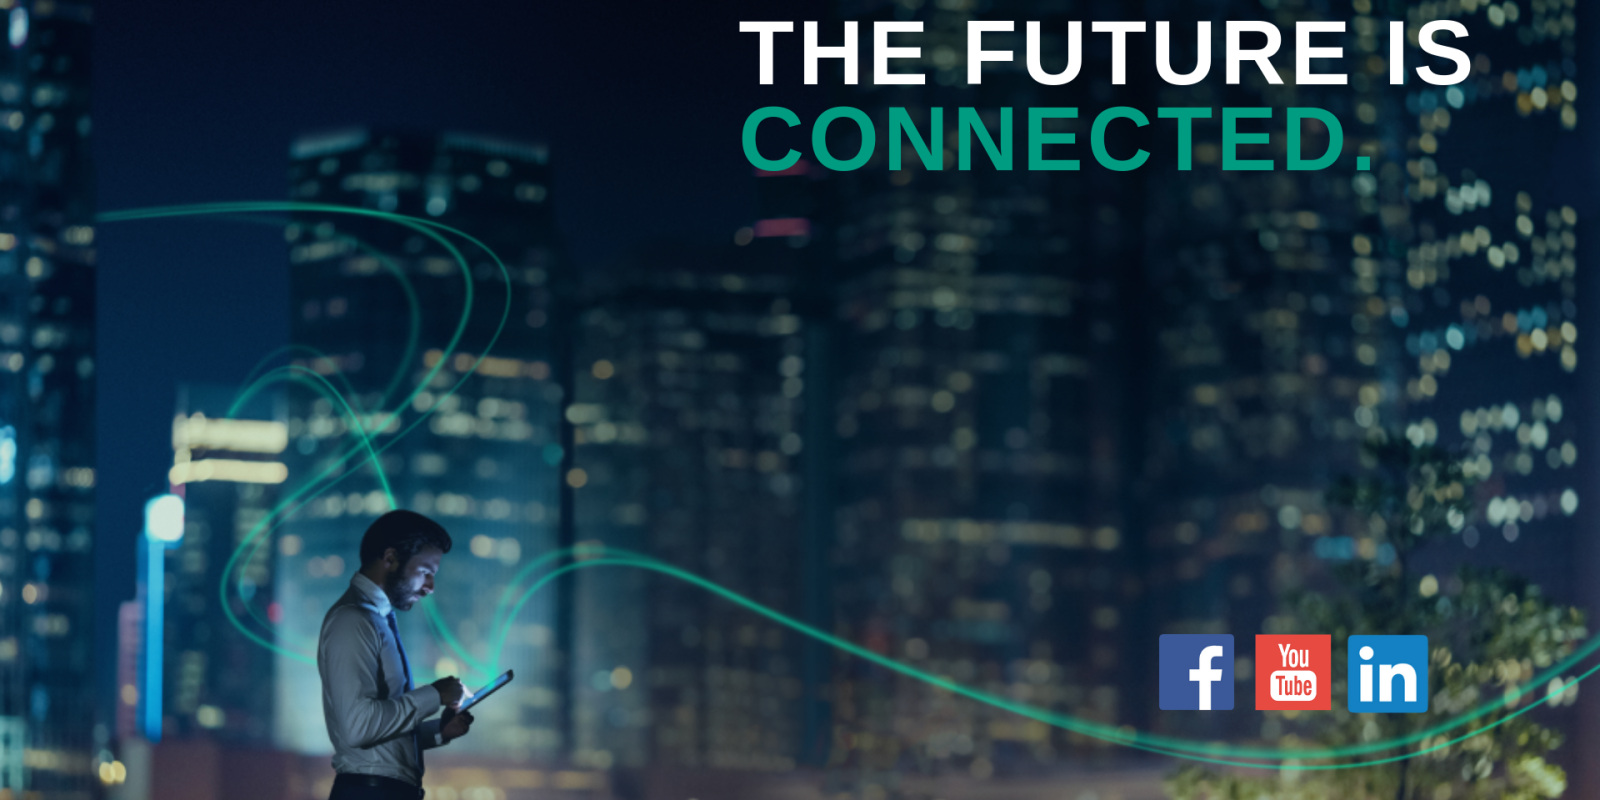 The future is connected - social media